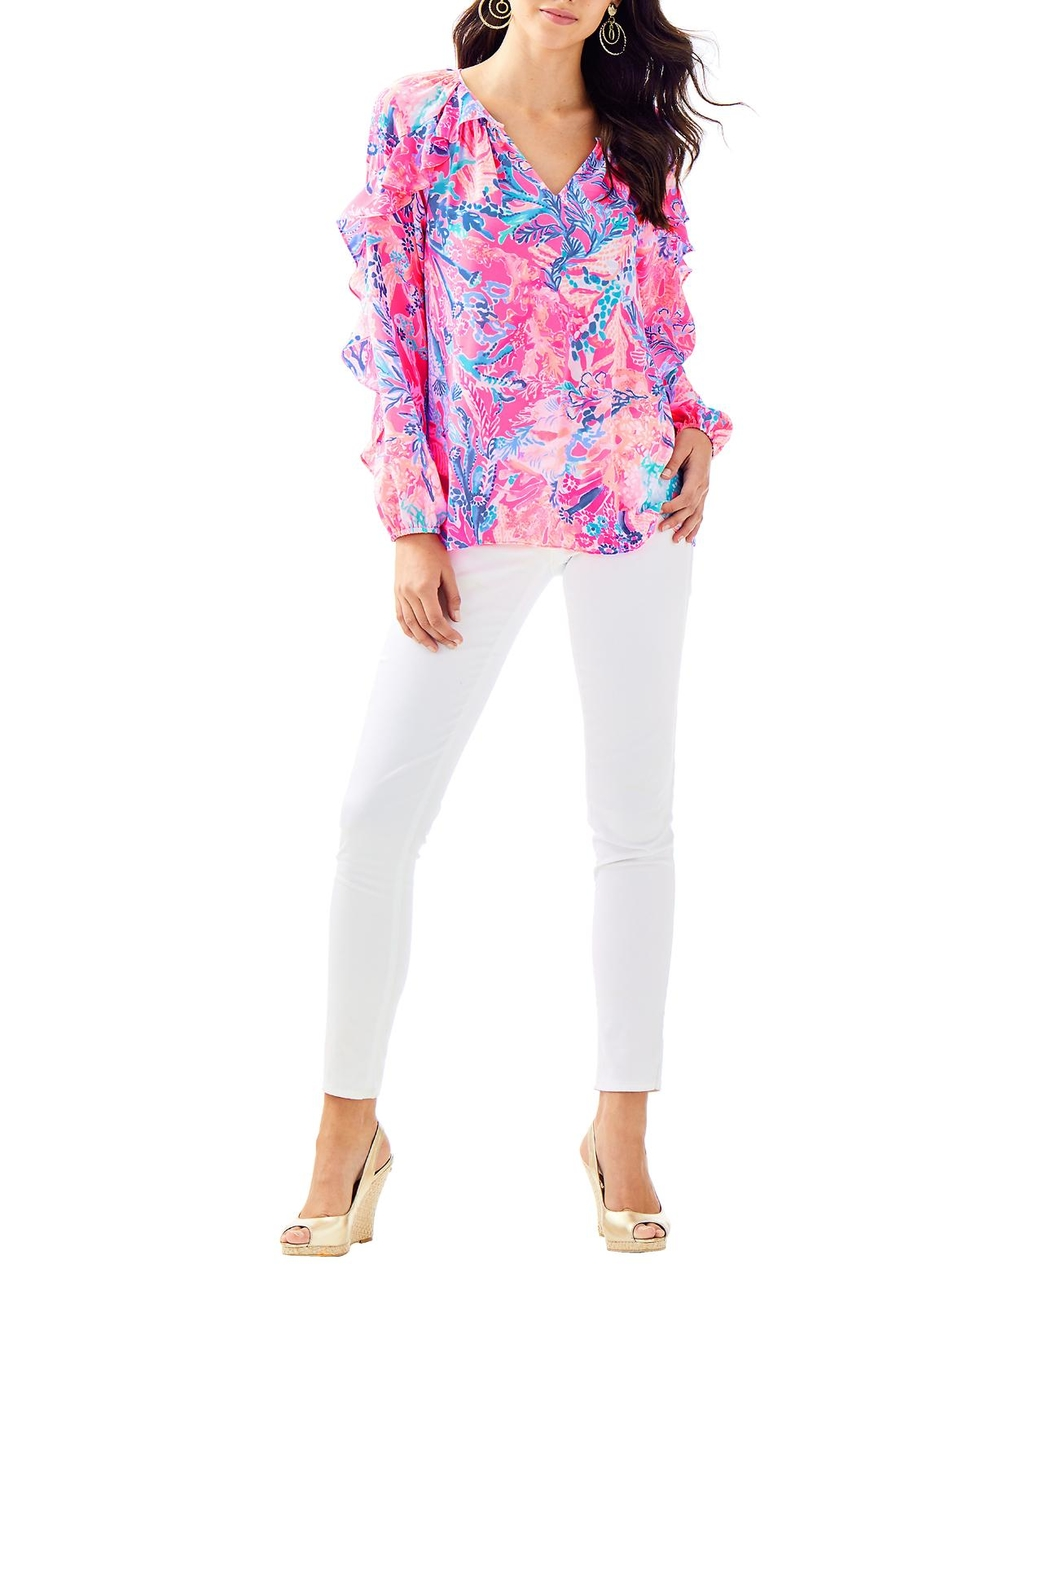 Lilly Pulitzer Elora Top - Side Cropped Image